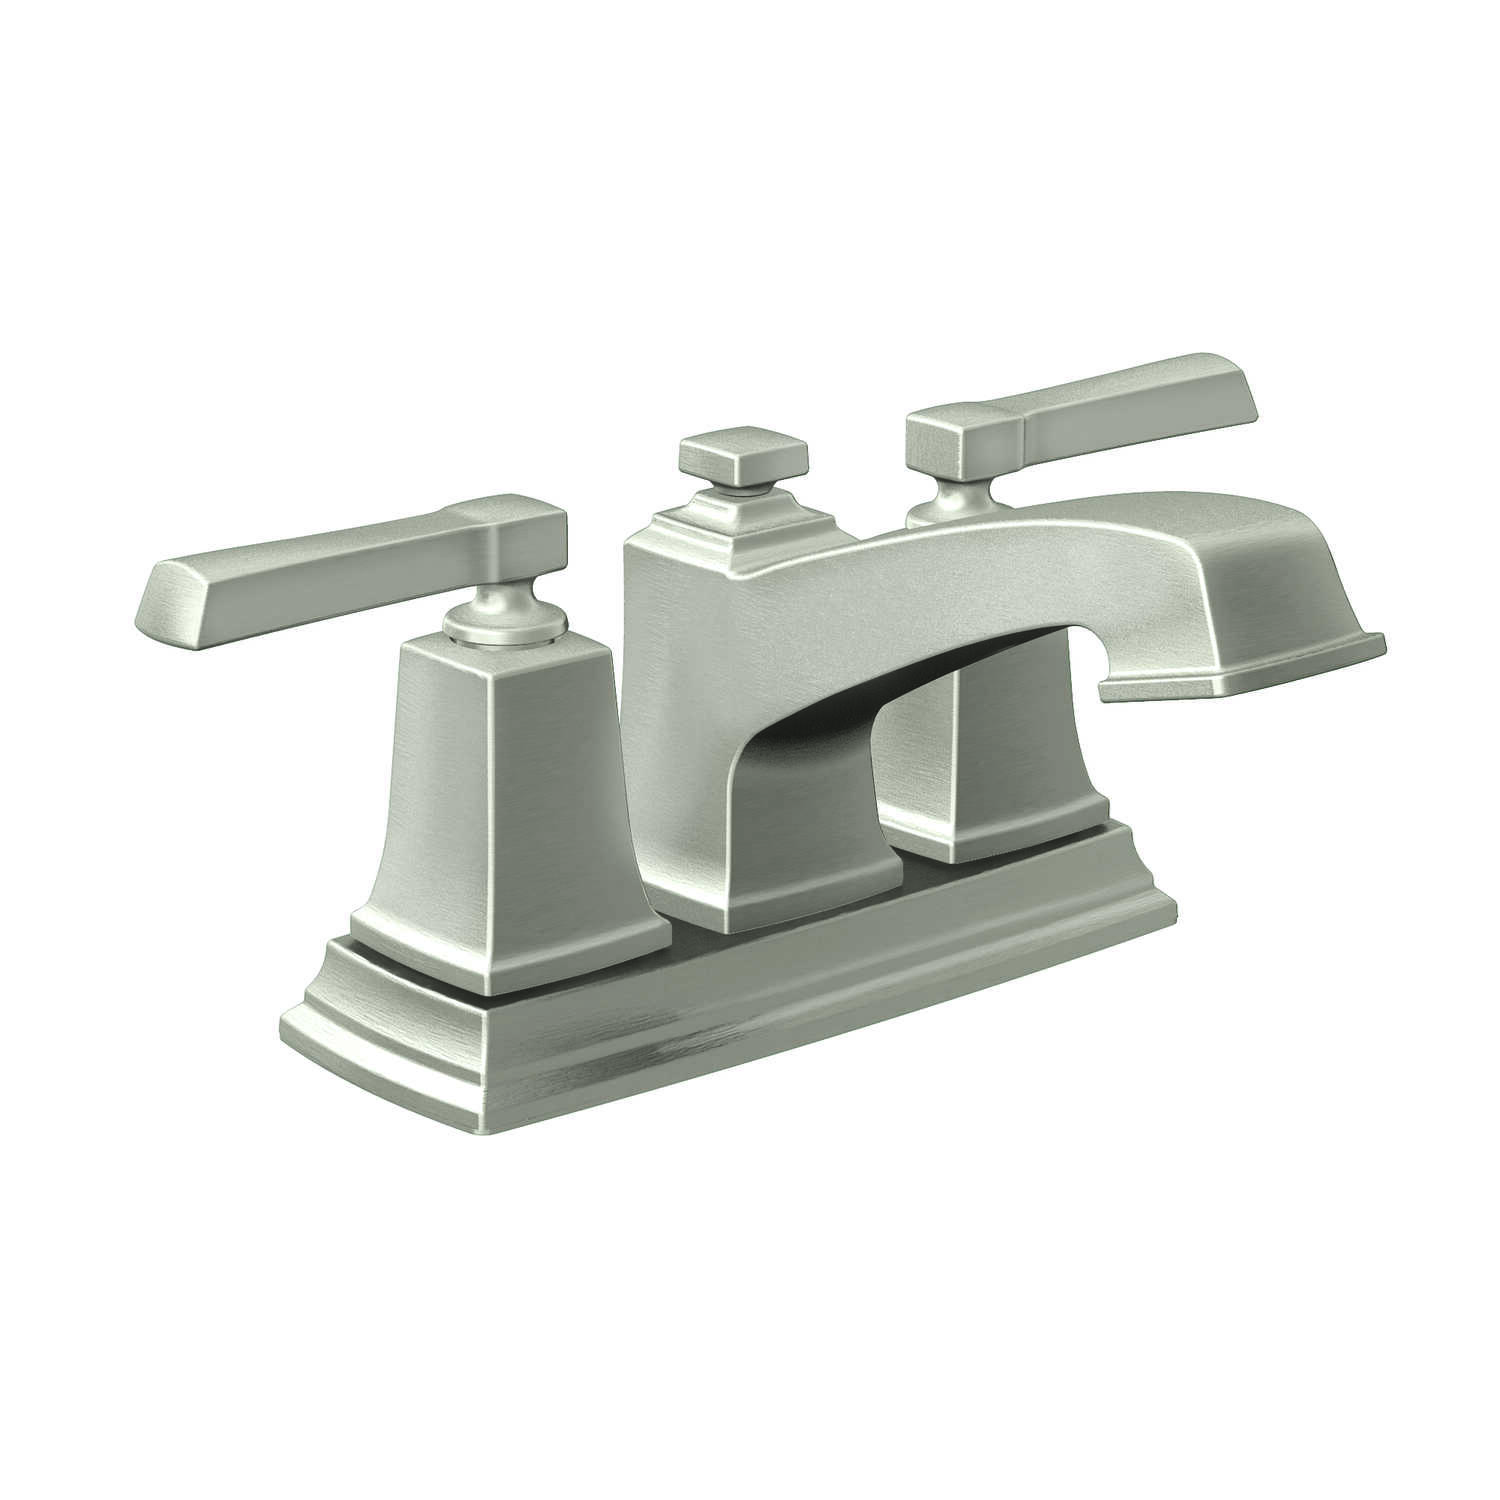 Moen  Boardwalk  Brushed Nickel  Two Handle  Lavatory Faucet  4 Centerset in.